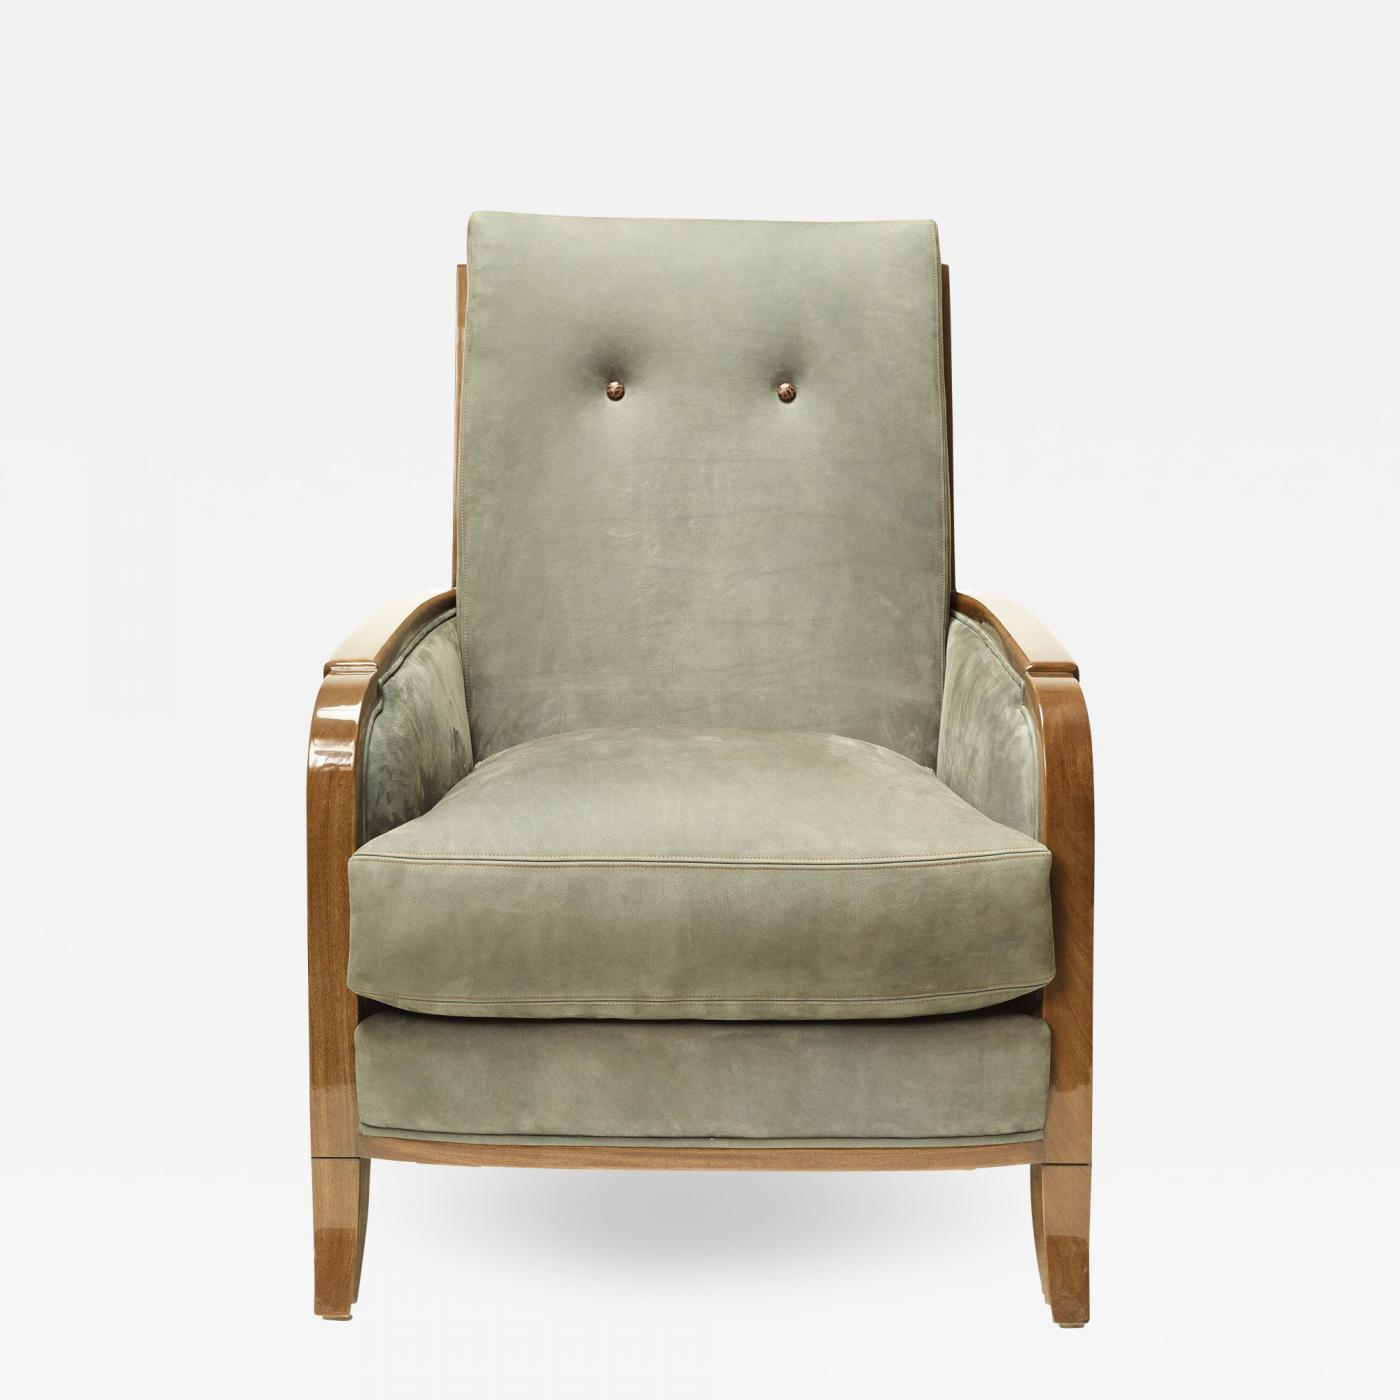 Admirable Allan Switzer Solo 3 The Maritime Lounge Chair Caraccident5 Cool Chair Designs And Ideas Caraccident5Info